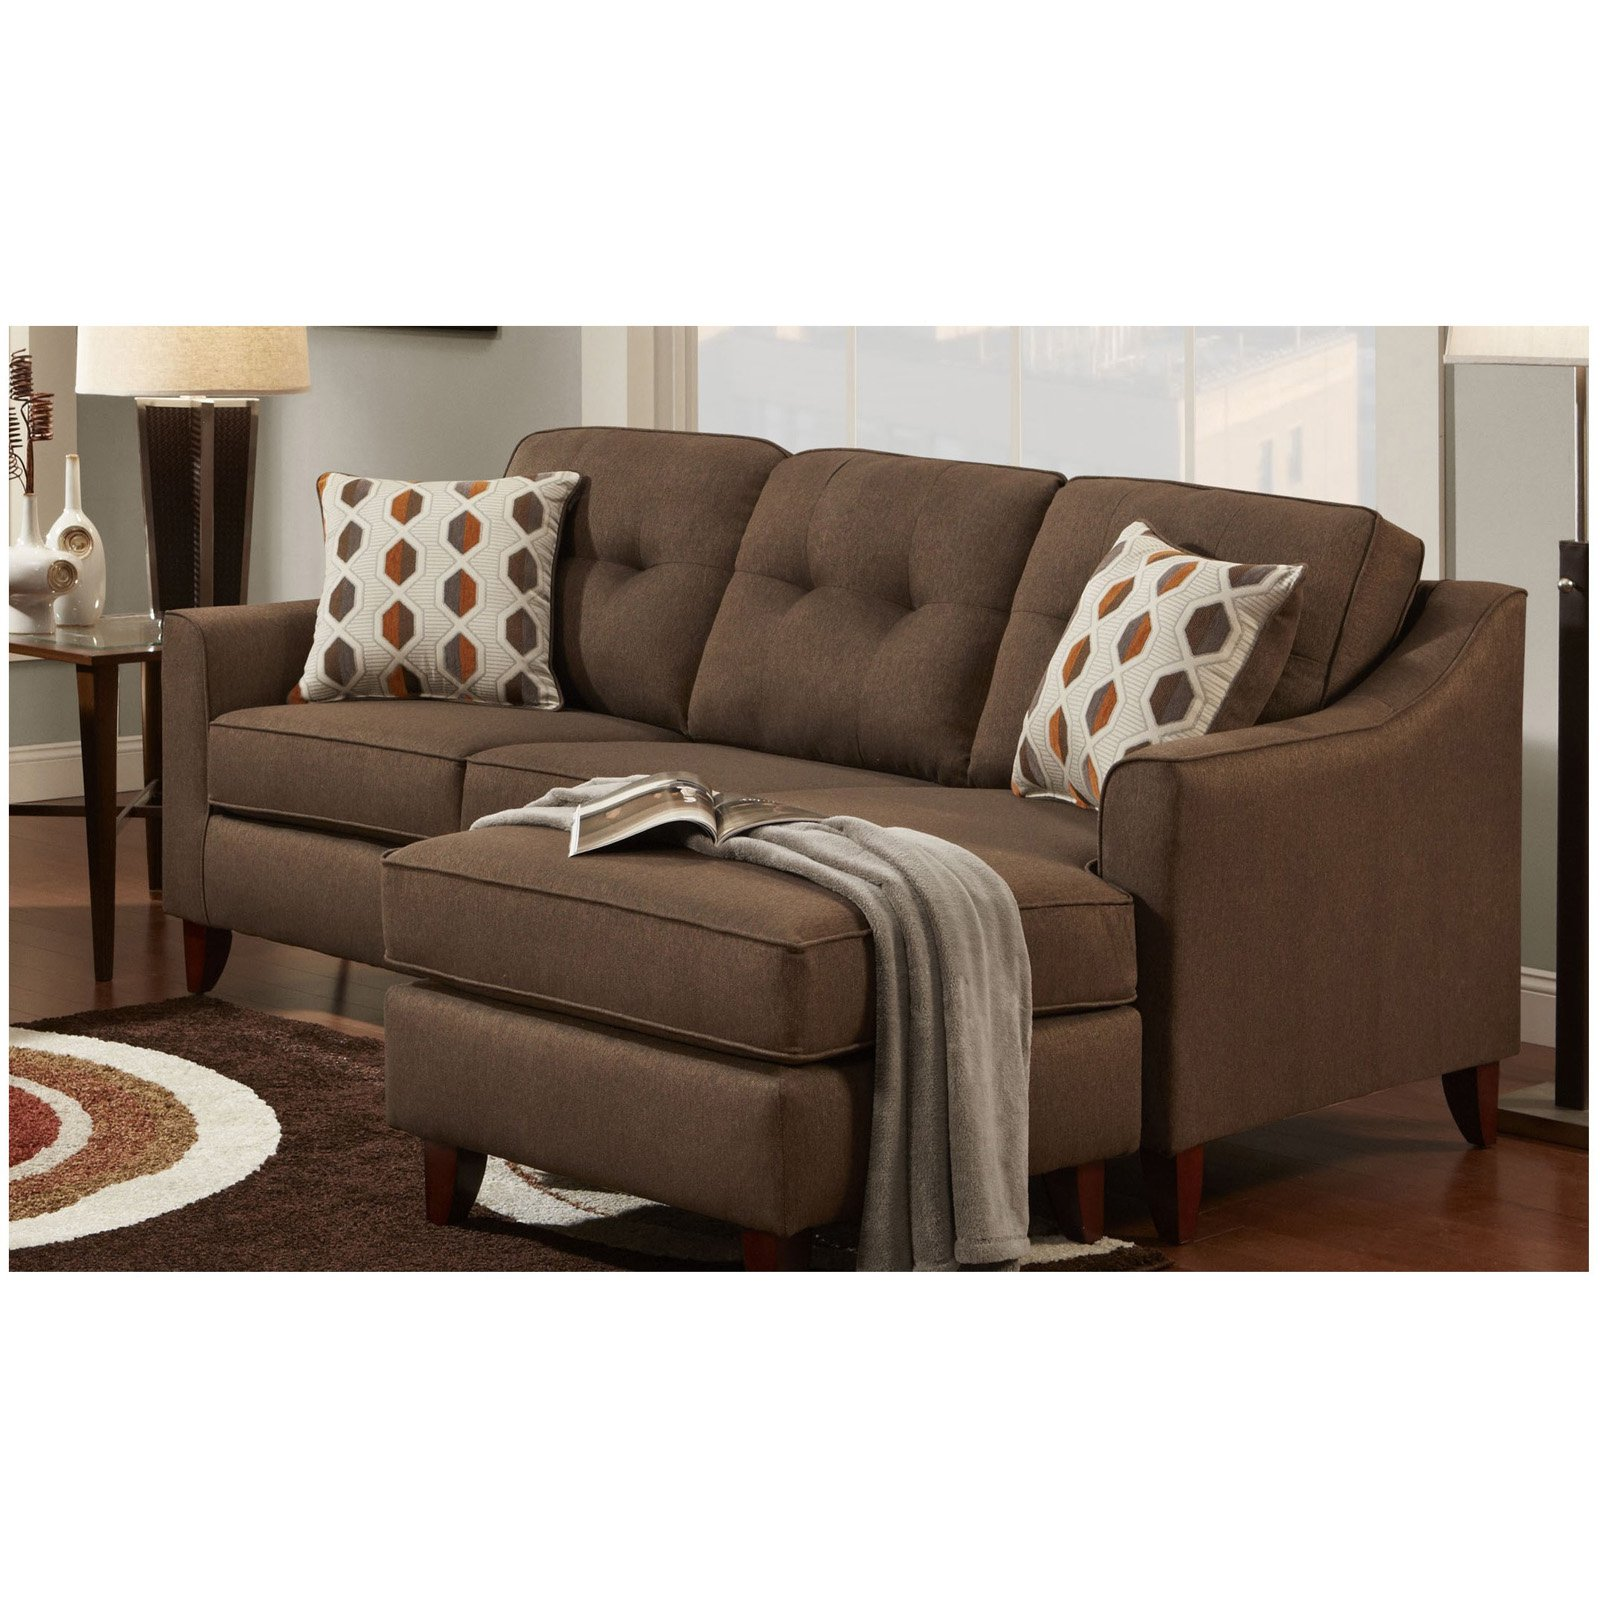 Chelsea Sectional Sofa Chelsea Home Furniture Northbridge Sectional Sofa